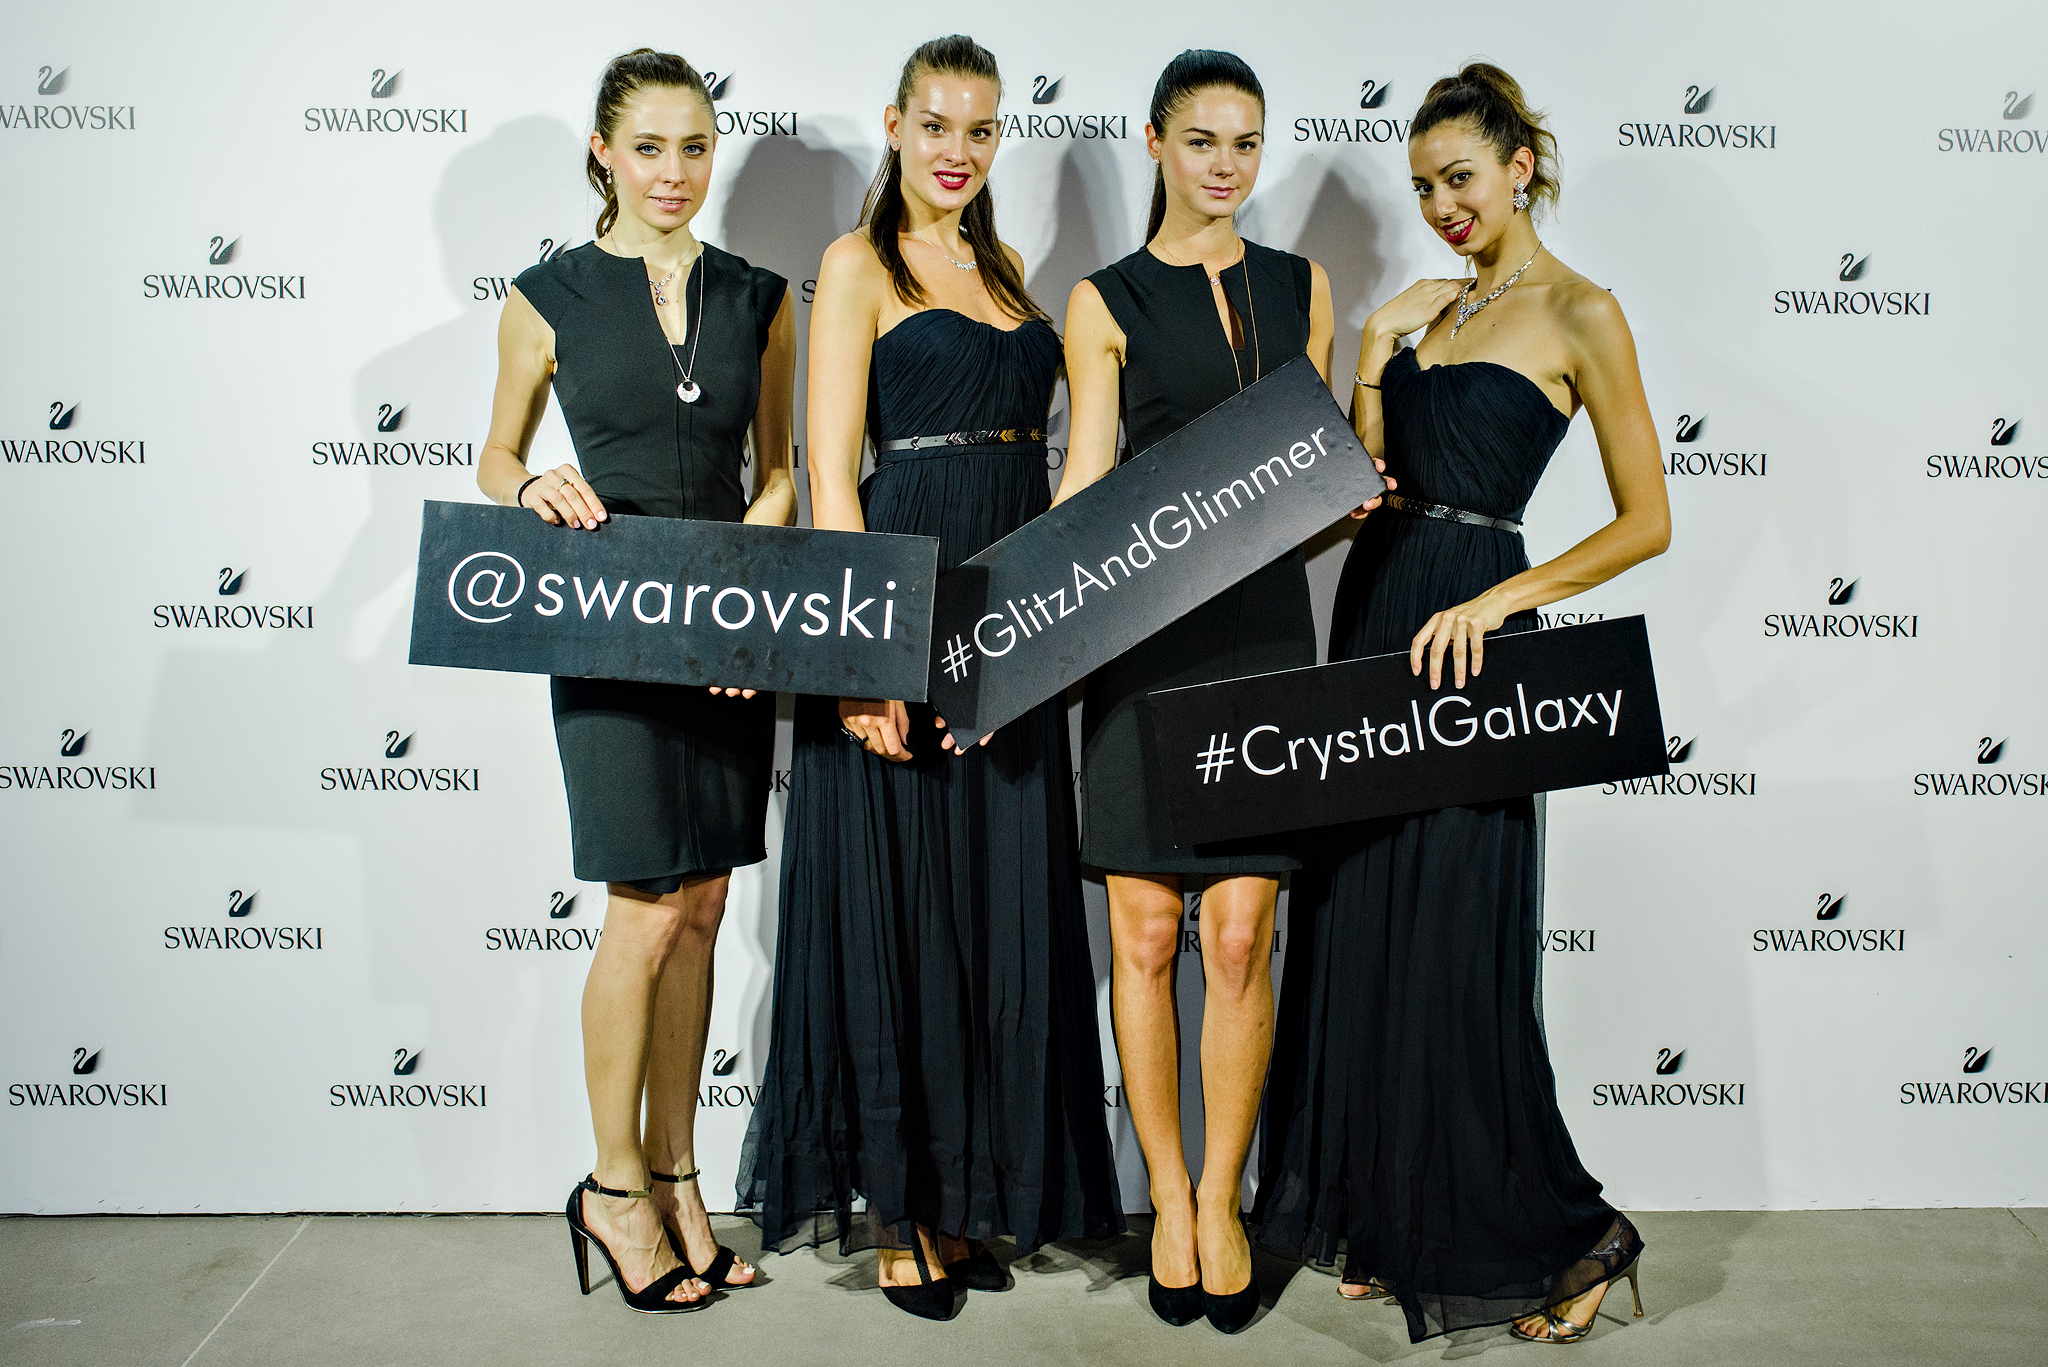 Swarovski - Event Photographer